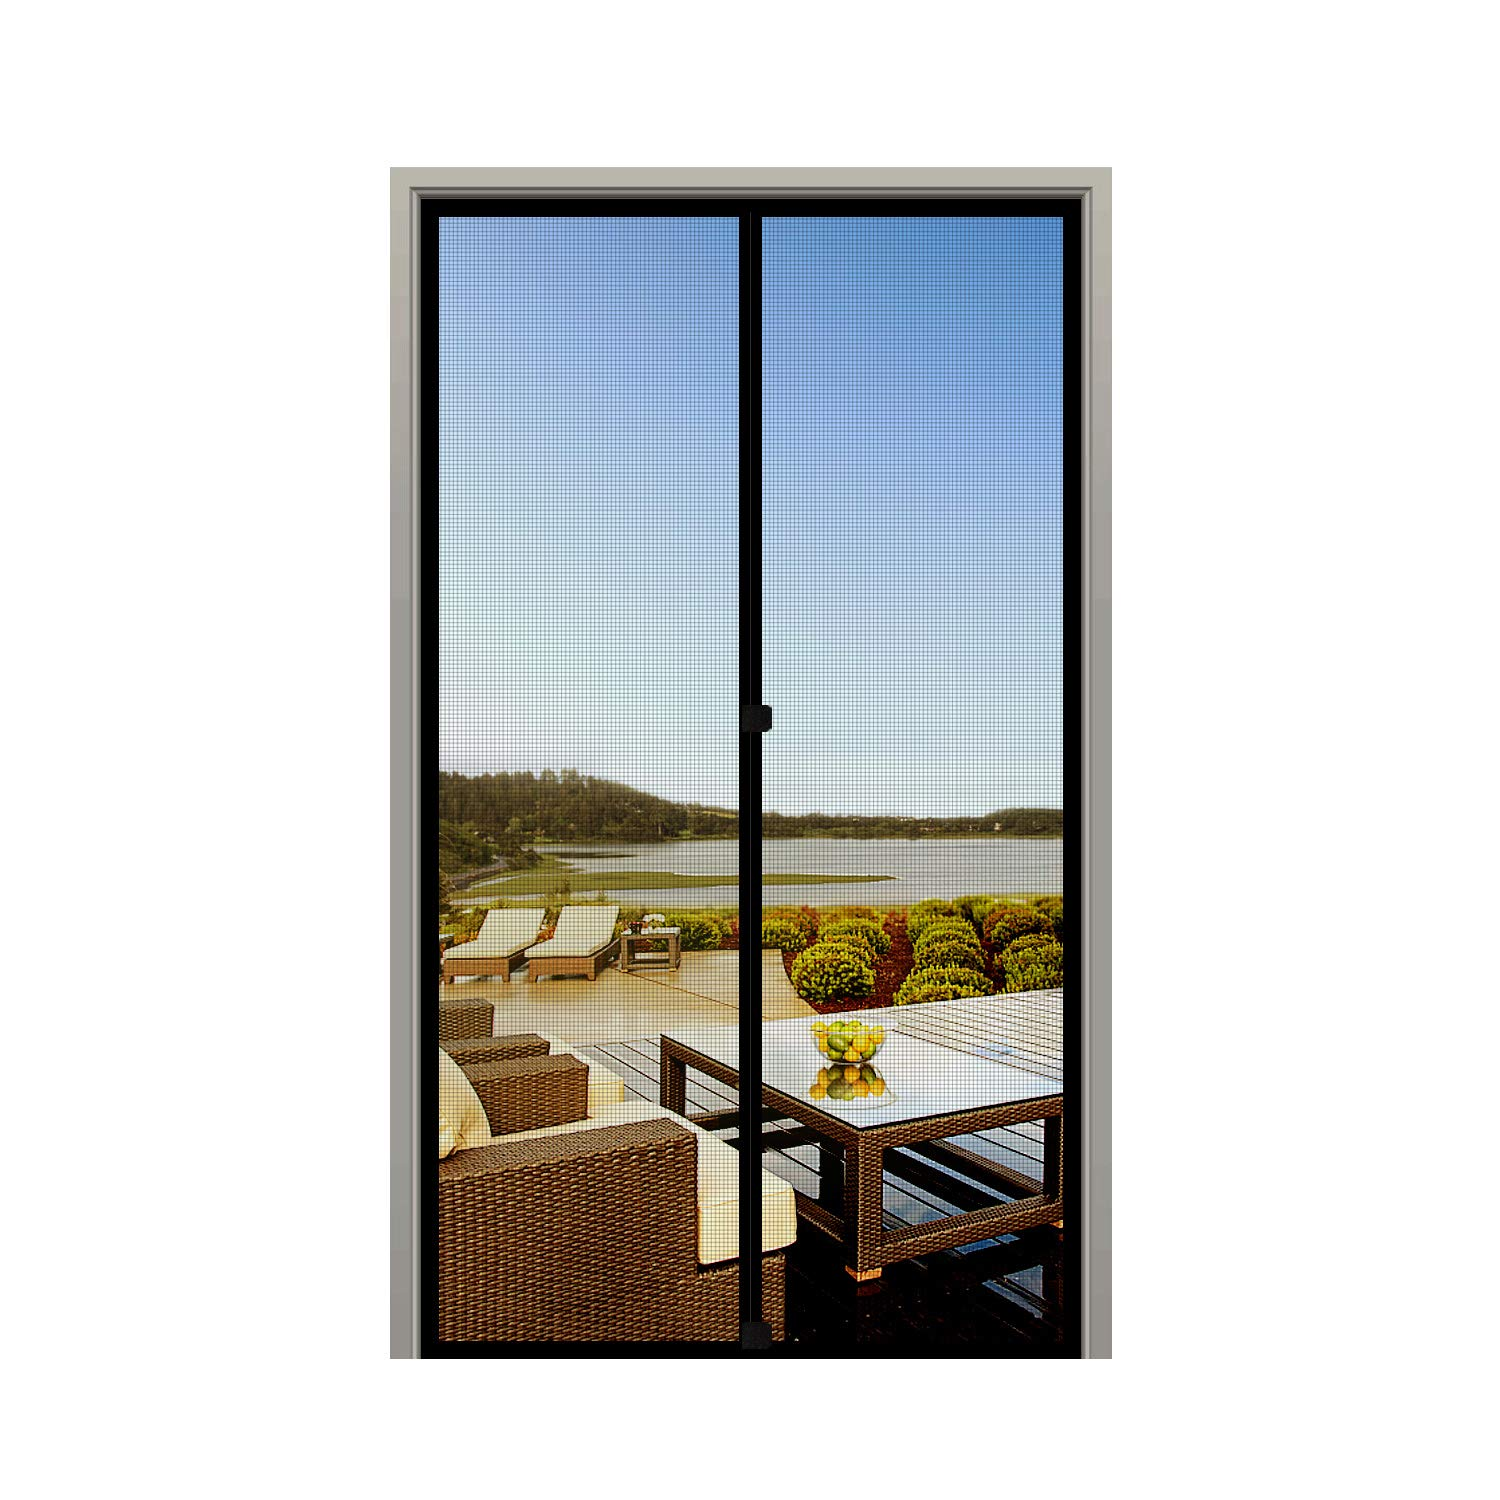 MAGZO Screen Door Magnets 32 x 80, Durable Fiberglass Door Mesh with Full Frame Hook&Loop for Patio Door Fits Door Size up to 32''x80'' Max-Black by MAGZO